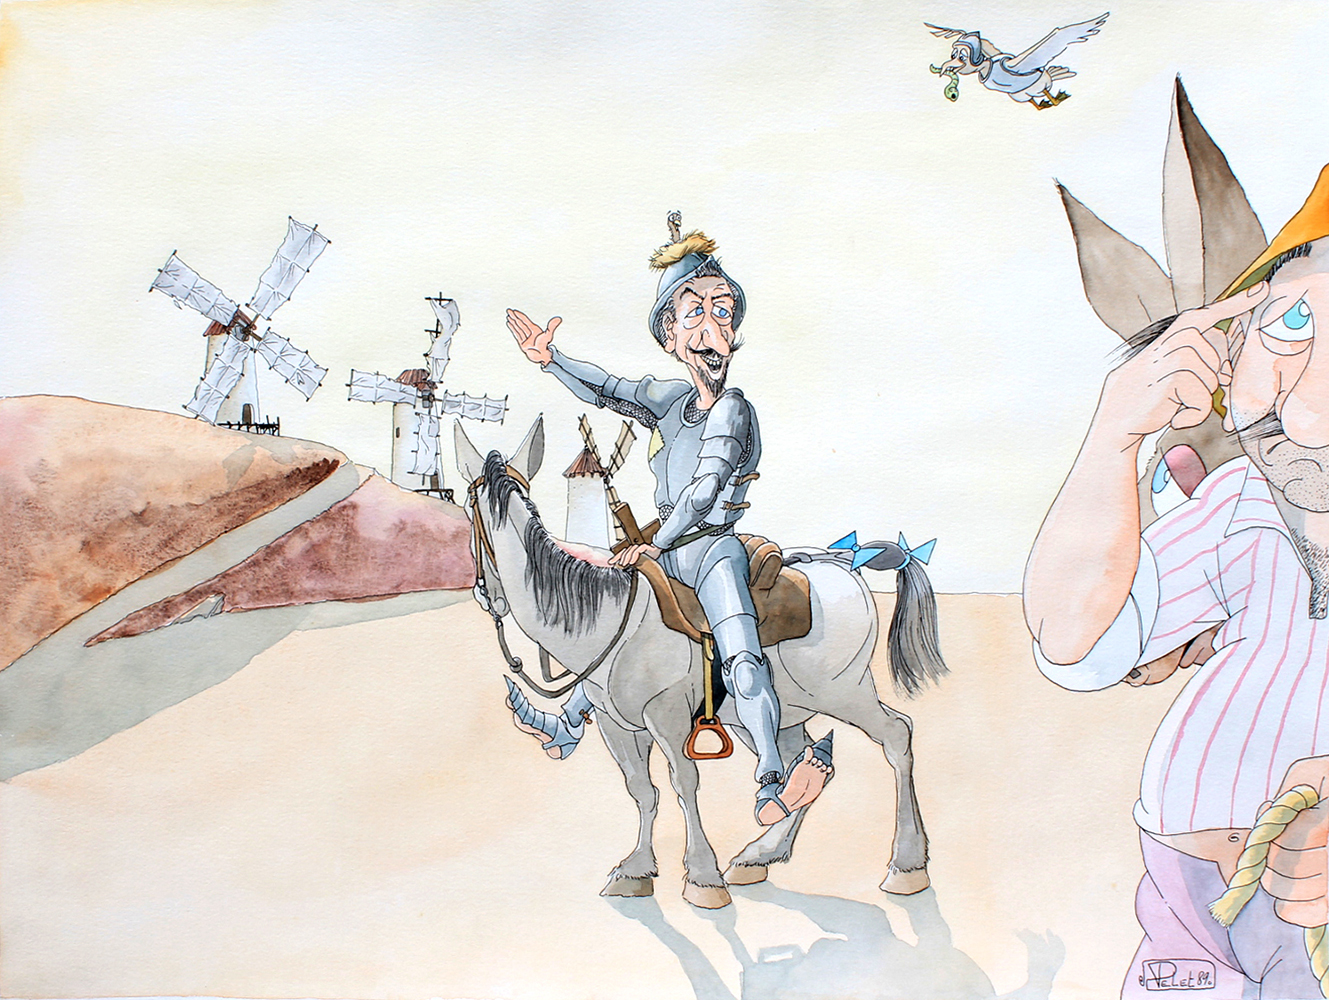 Claude Pelet Dessinateur - Humour - Don Quichotte